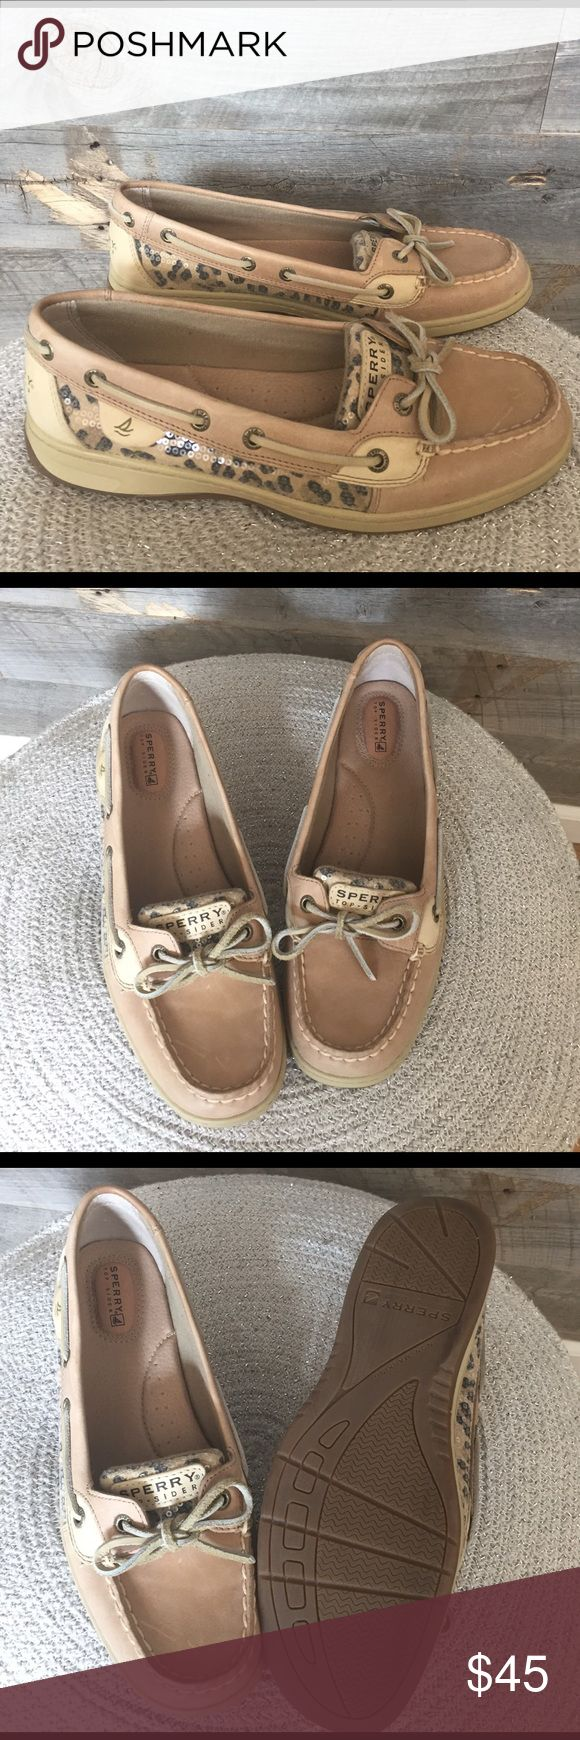 """Sperry Top-Sider Angelfish Boat Shoe w/ leopard Sperry Top-Sider feminine boat shoe with sequin, leopard print detail.                                                                                 Brass grommets with Sperry engraved details.                     Molded rubber sole includes 3/4"""" flat heel.                         Worn once in home. Smoke-free. Sperry Top-Sider Shoes Flats & Loafers"""